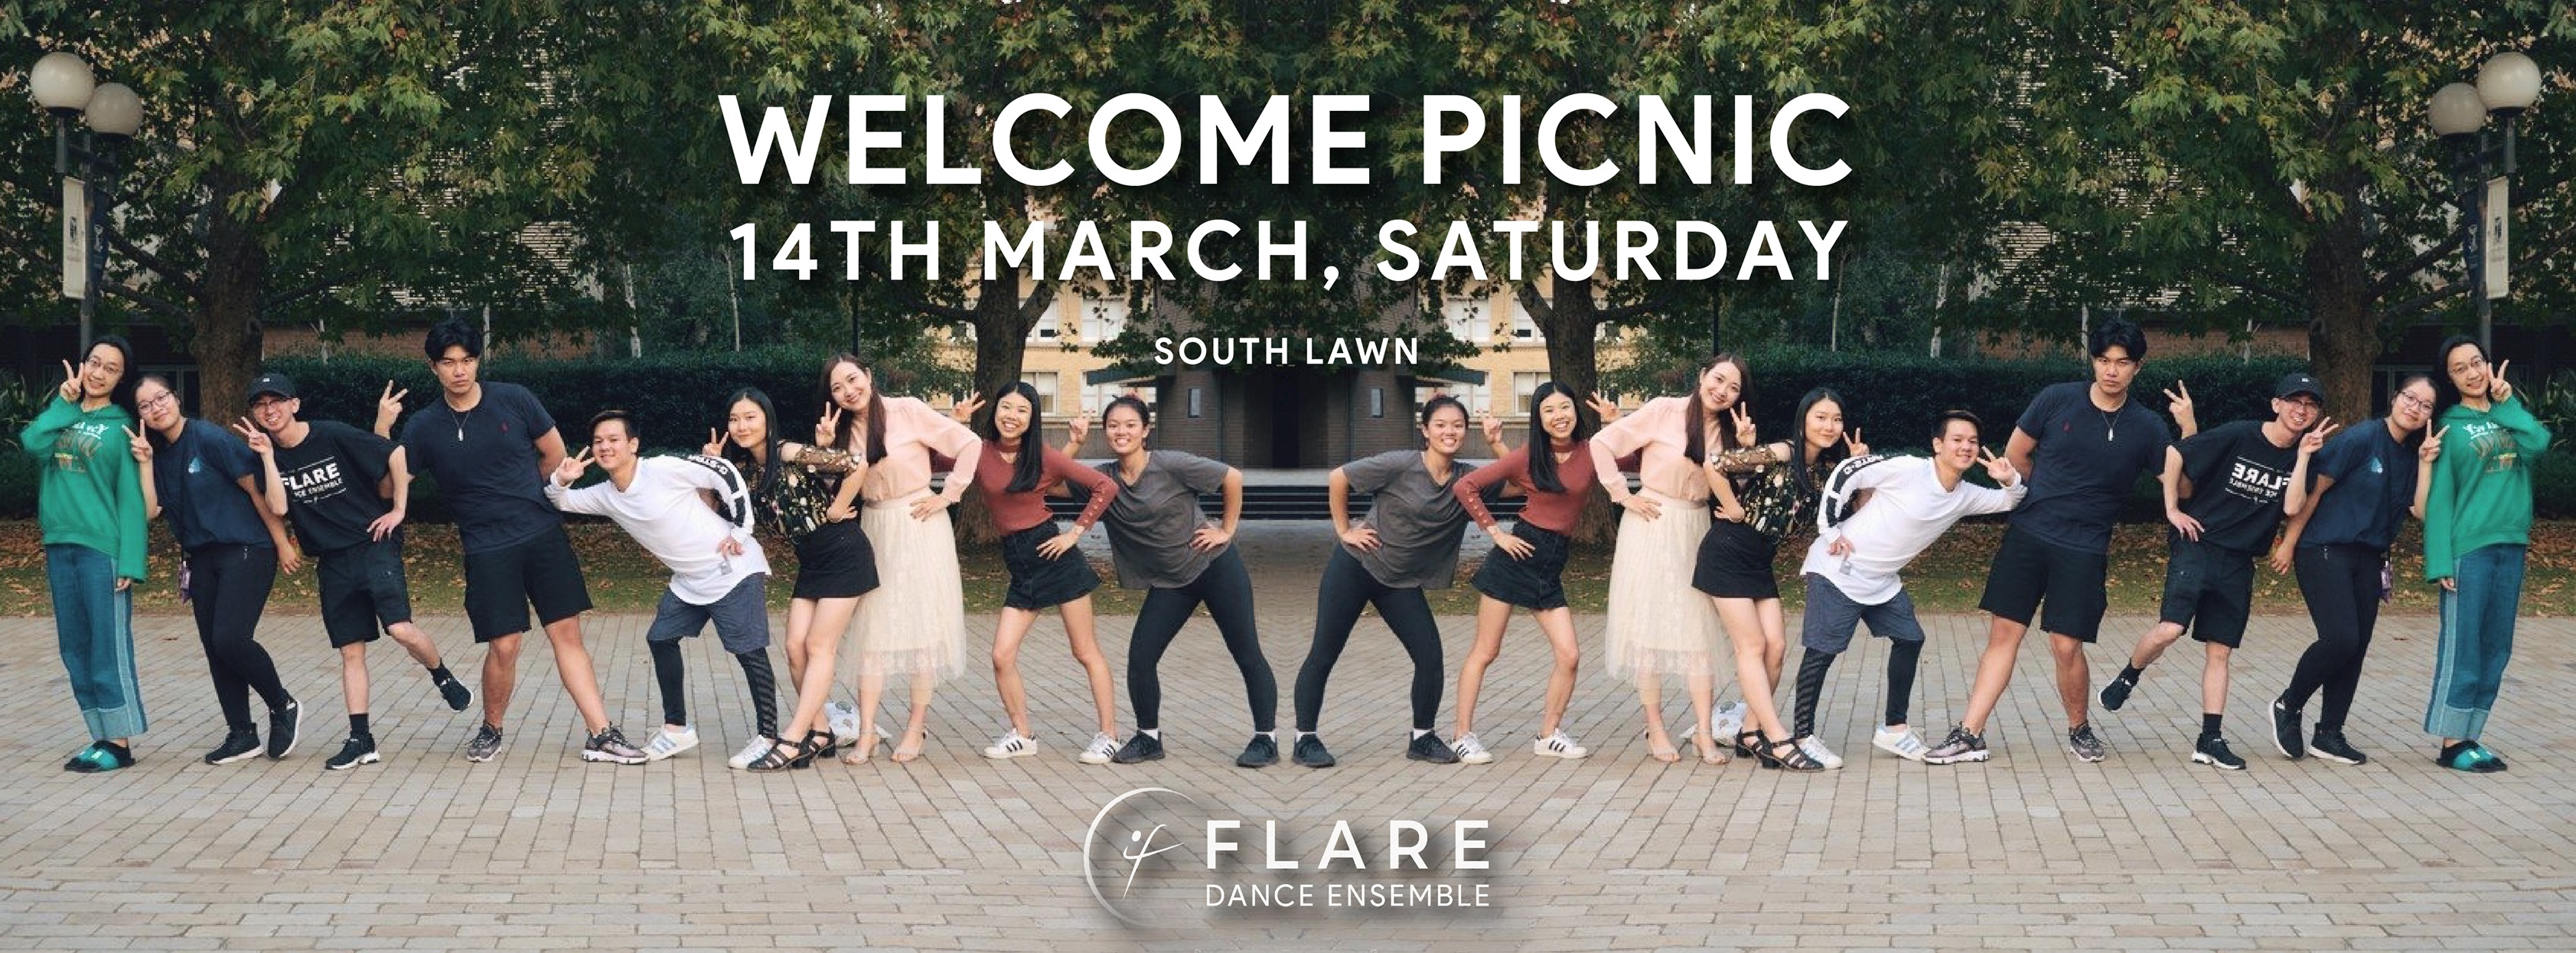 Flare 2020: Welcome Picnic! background image